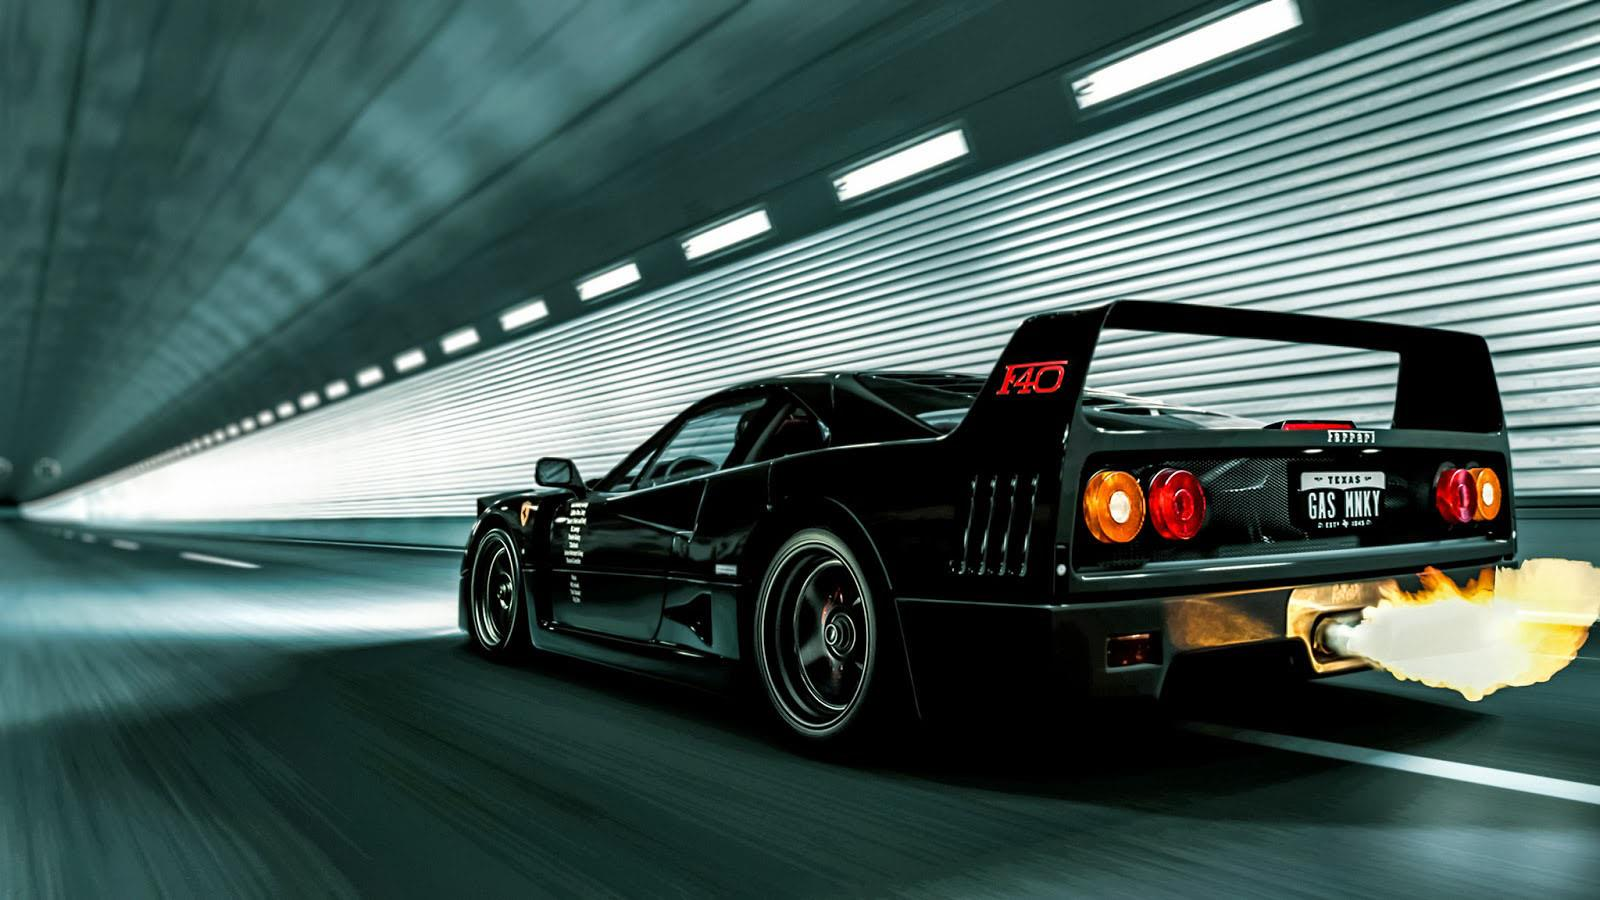 An F40 Restored By Texans